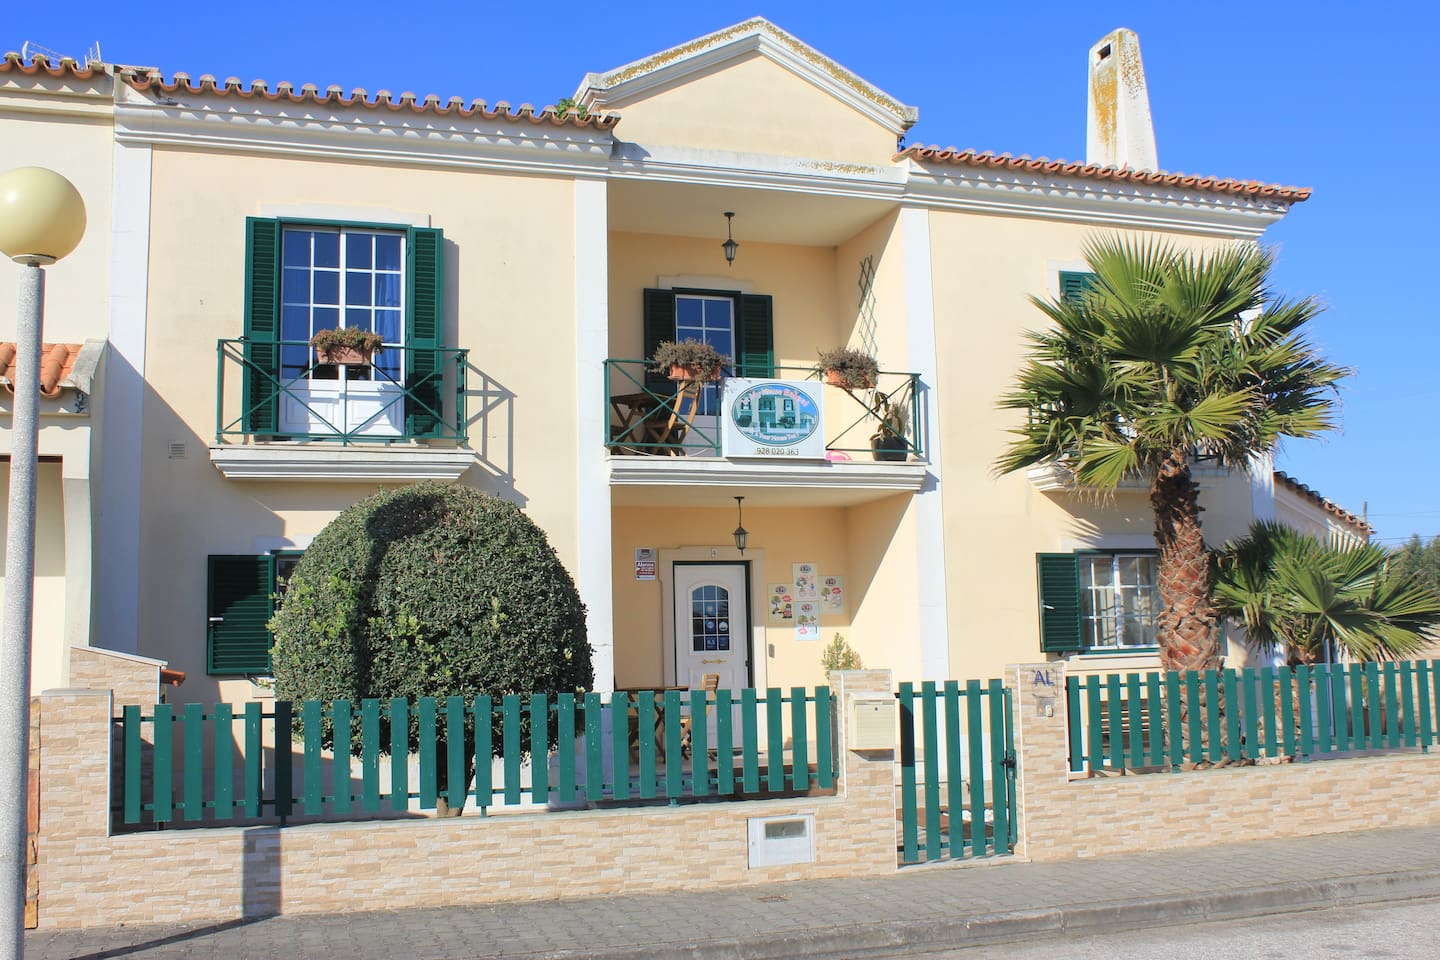 In My House Baleal - A wonderful place to stay